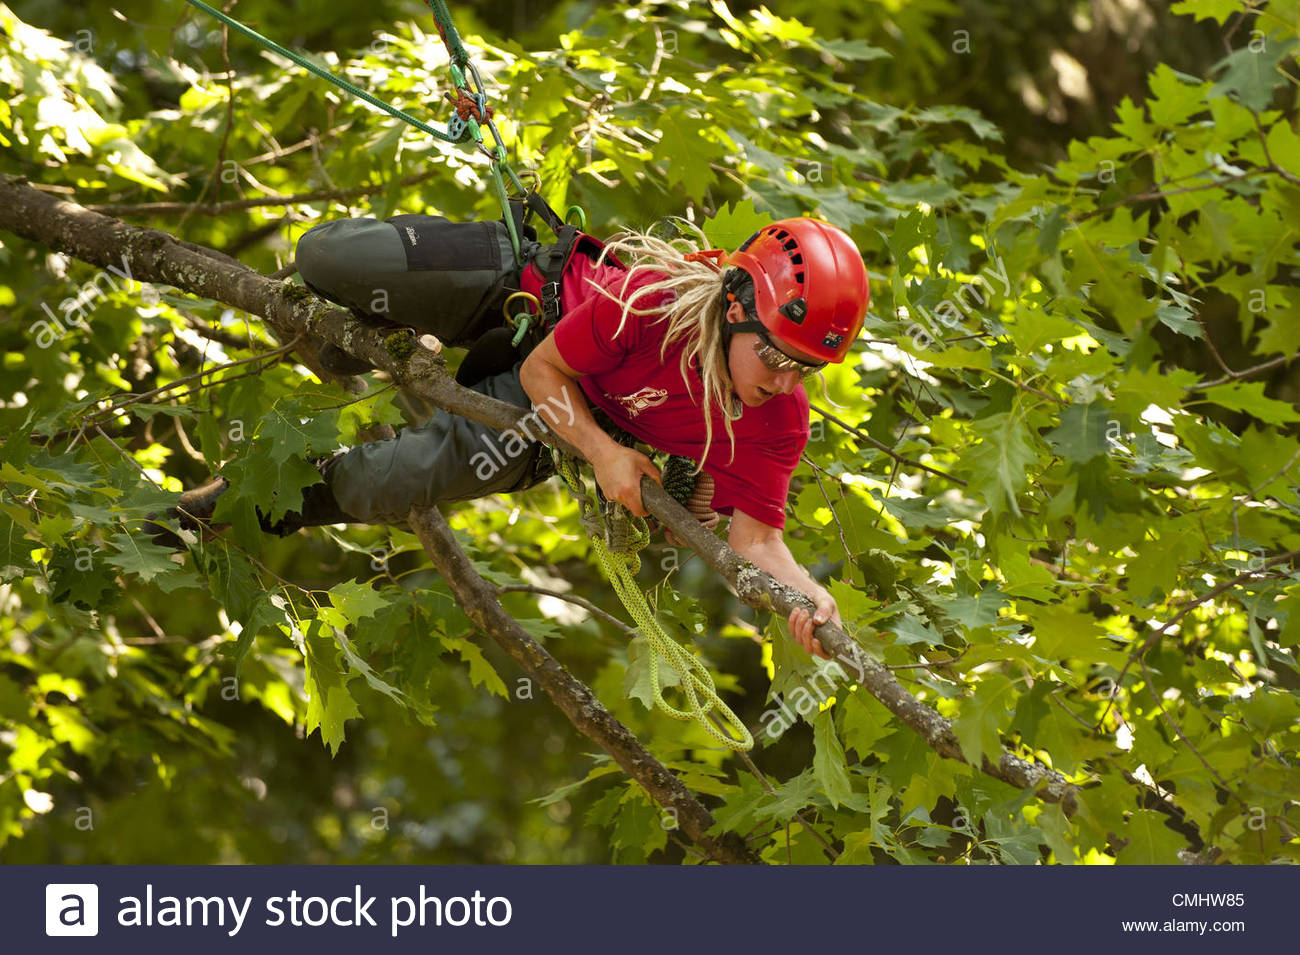 Aug. 12, 2012 - Portland, OR, USA - Sweden's Veronika Ericsson climbs onto a small limb to complete a task in - Stock Image